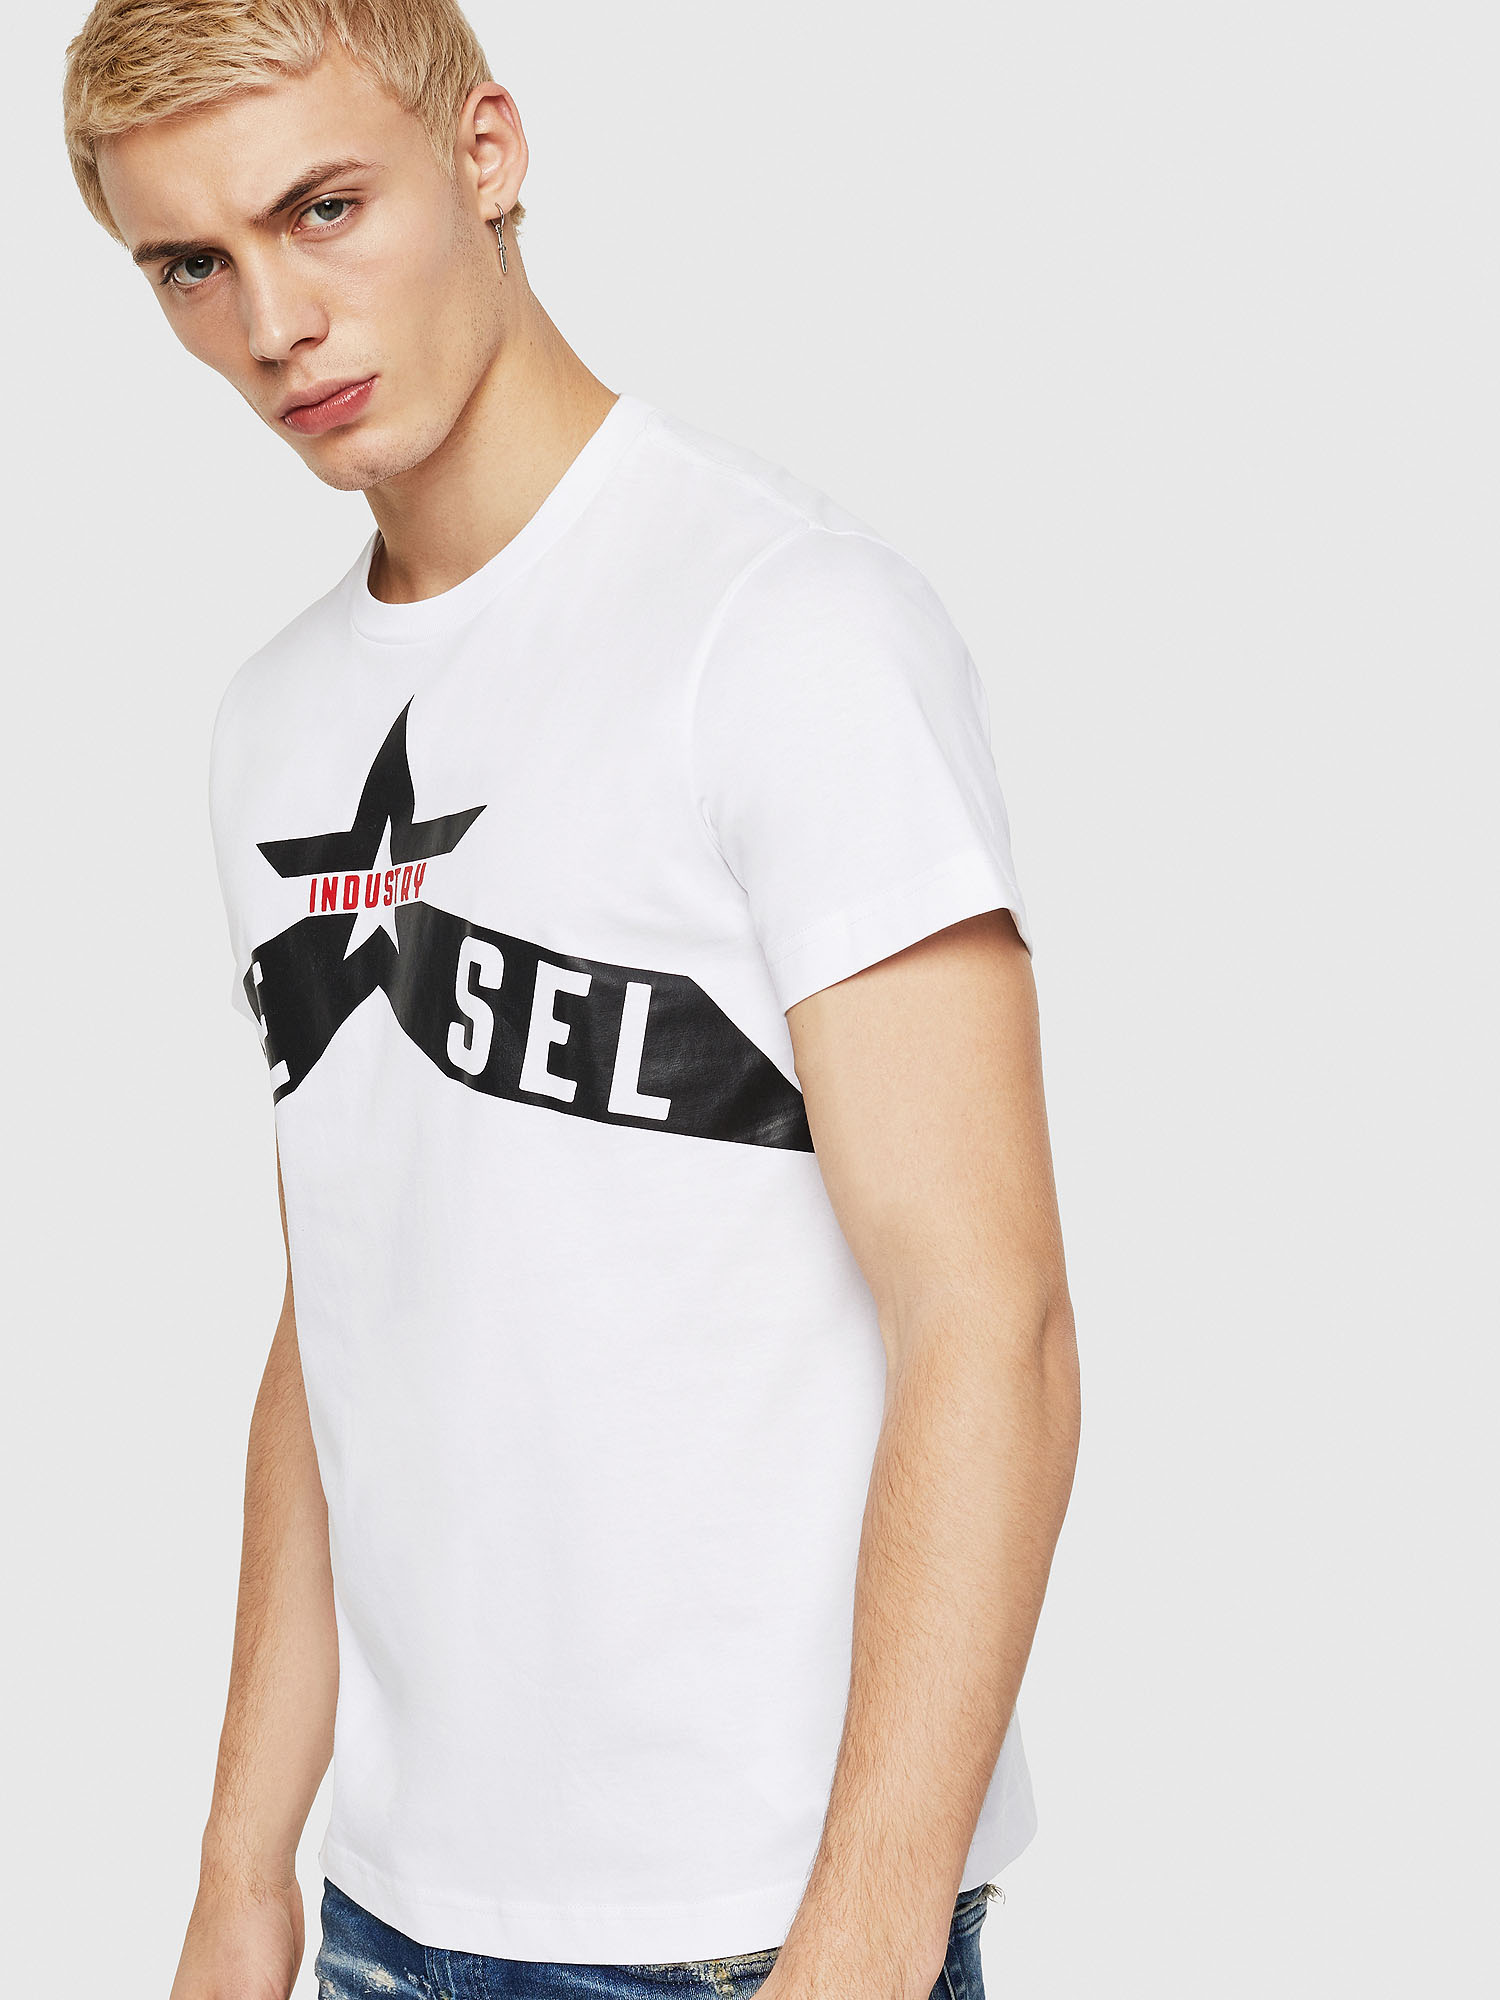 https://www.diesel.co.jp/products/detail.php?product_id=2302494&brand=diesel&subcat=men&classcategory_id1=2308563&se=2